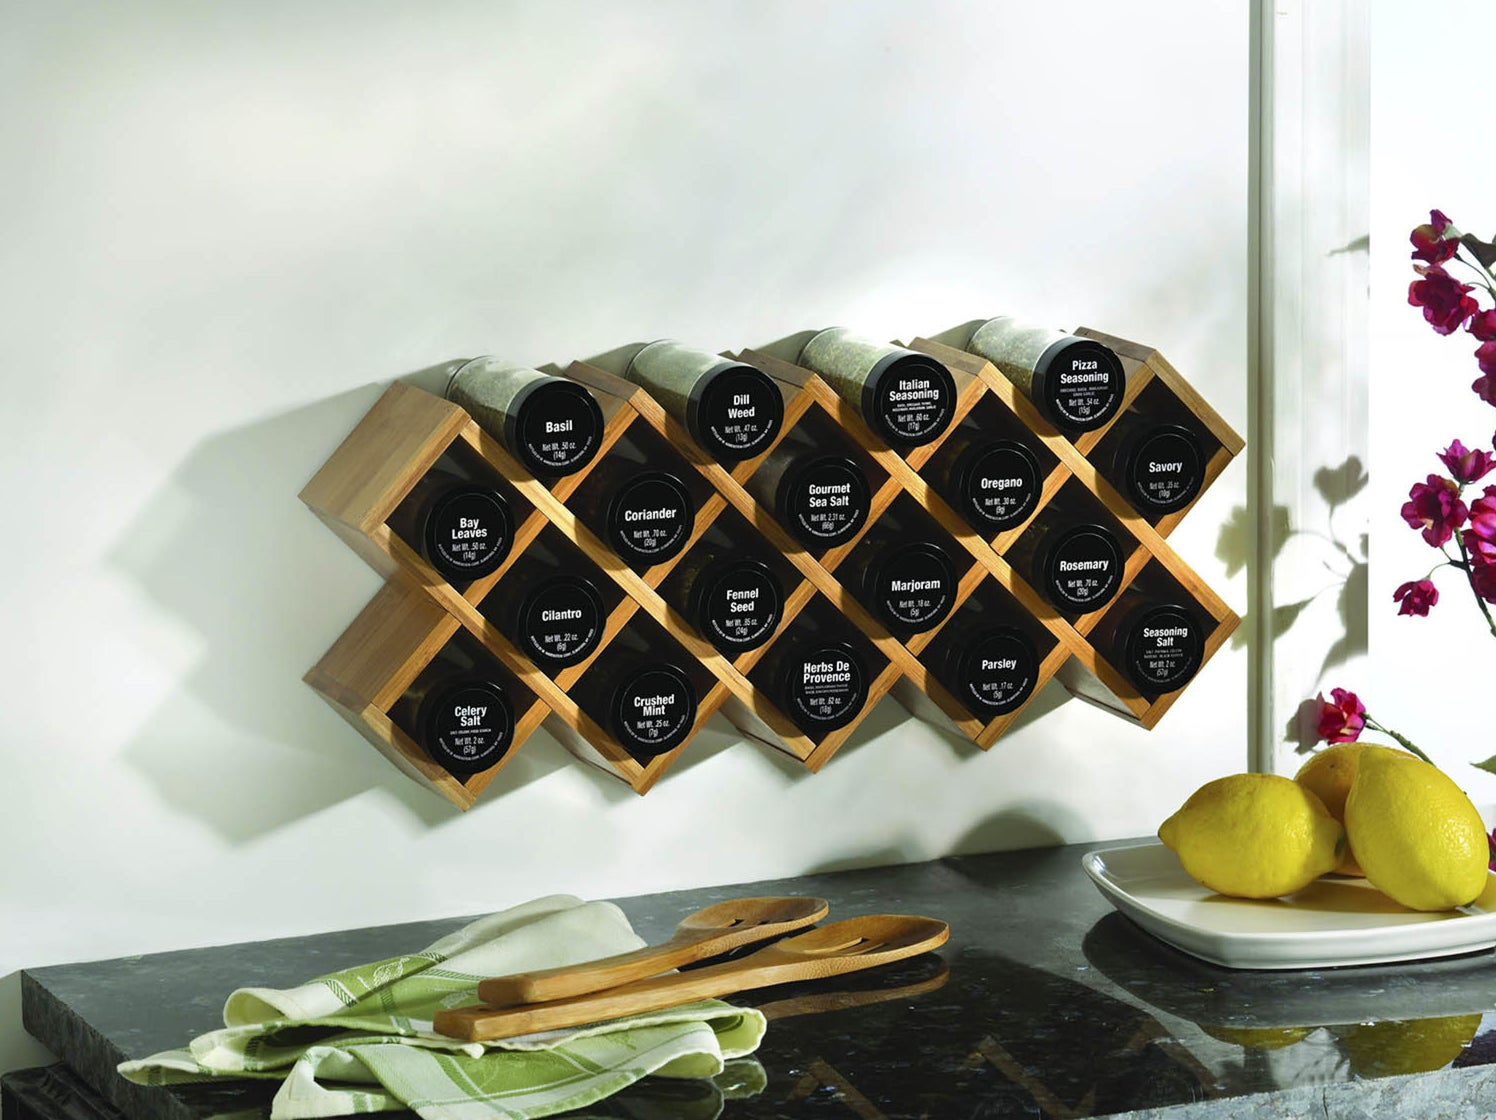 spice rack installed on wall with matching jars filled in each slot